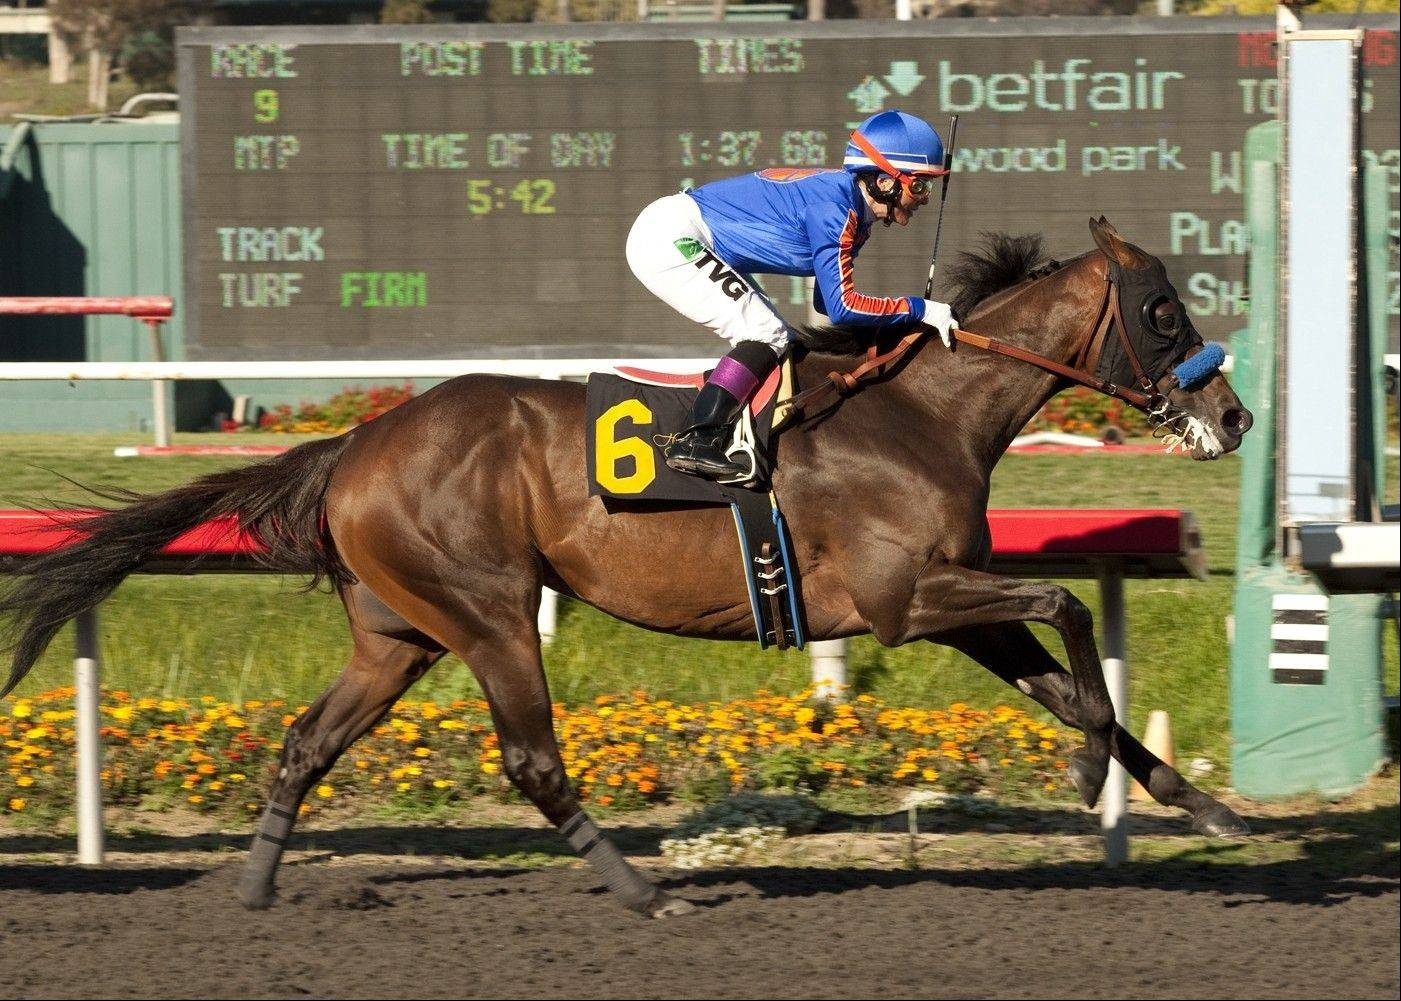 Game On Dude, with jockey Chantal Sutherland, cruises to victory in the $500,000 Hollywood Gold Cup horse race at Betfair Hollywood Park in Inglewood, Calif. Game On Dude is back to take another shot at winning the $5 million Breeders' Cup Classic. He is one of a total of 180 horses, including eight defending or former champions, which were pre-entered Wednesday for the $25 million, 15-race Breeders' Cup world championships at Santa Anita on Nov. 2-3.